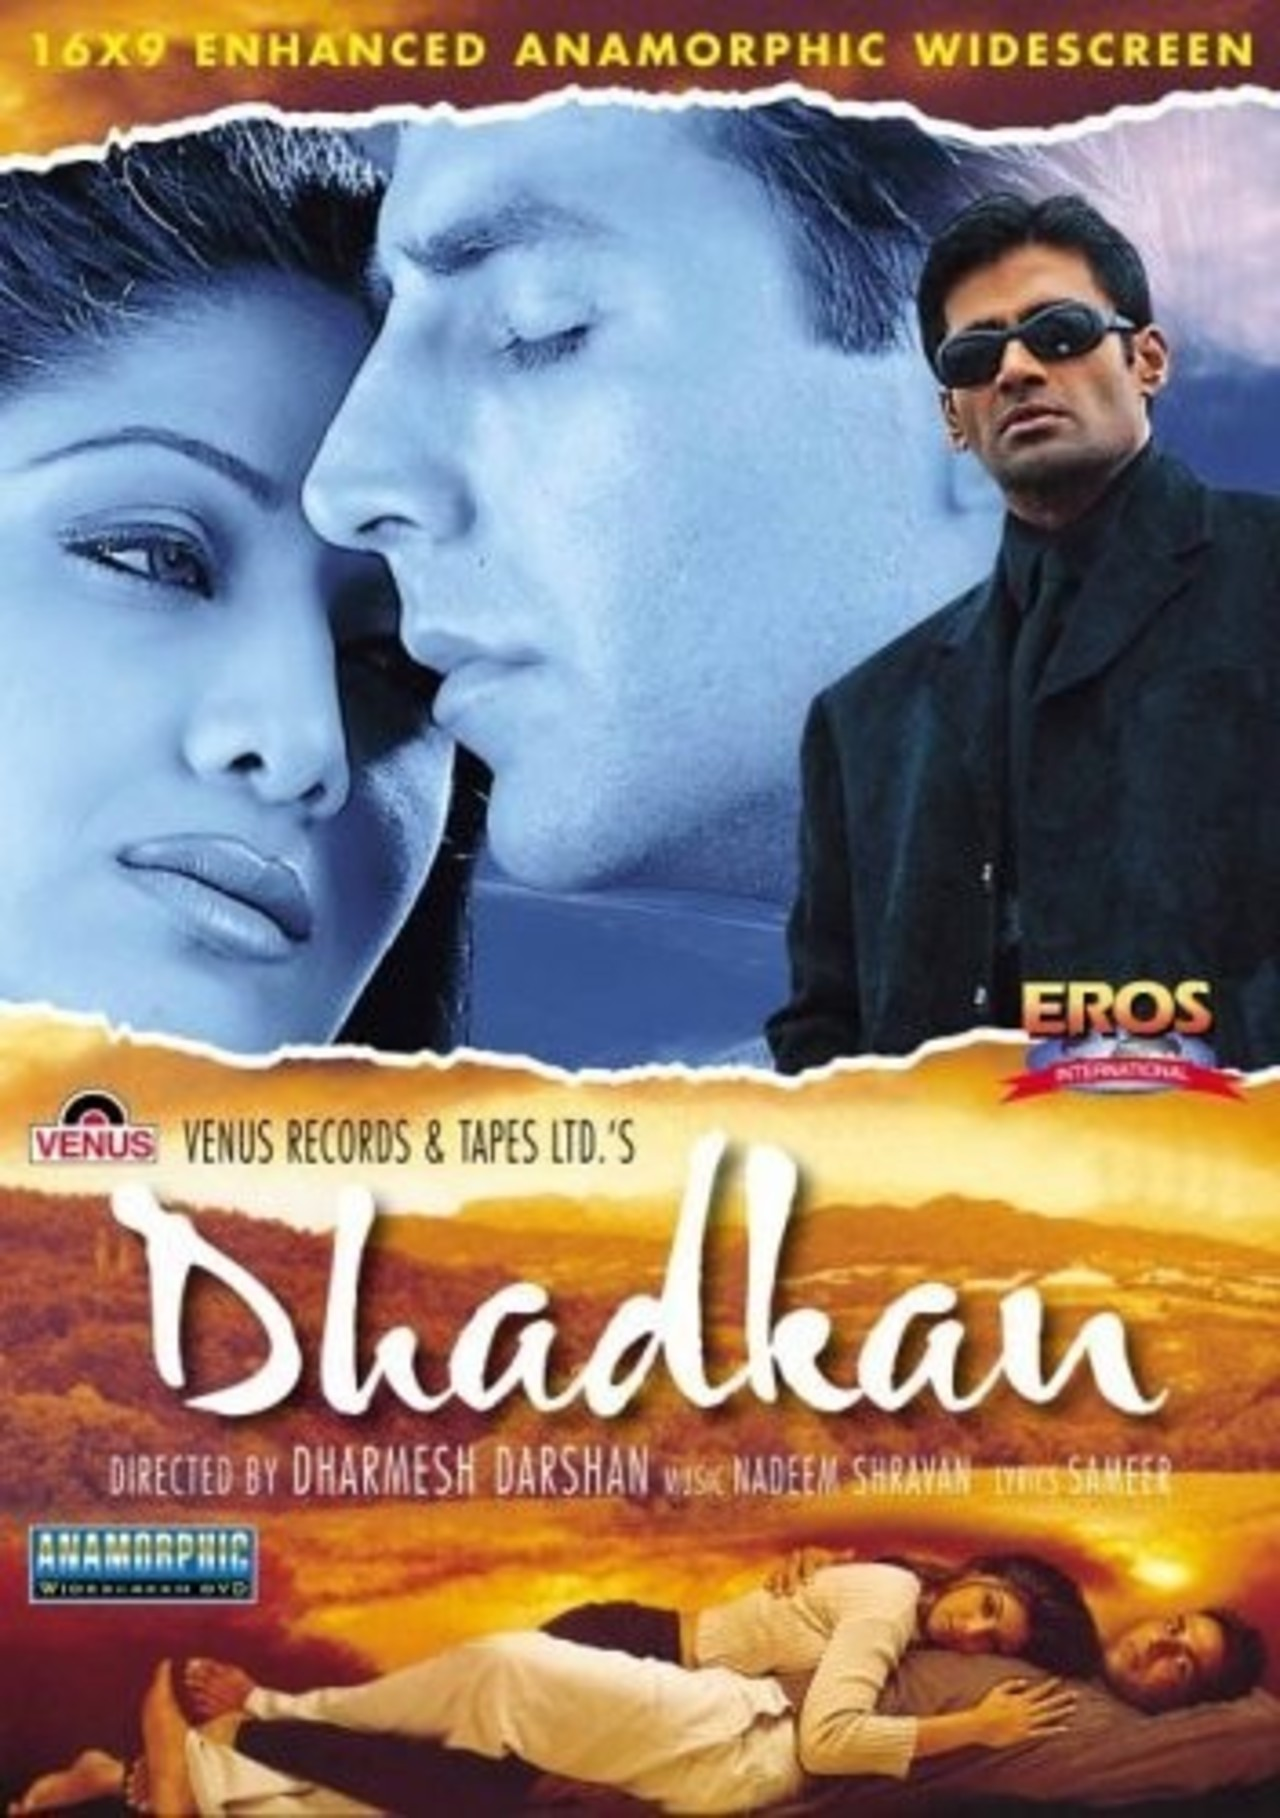 dhadkan movie 720p